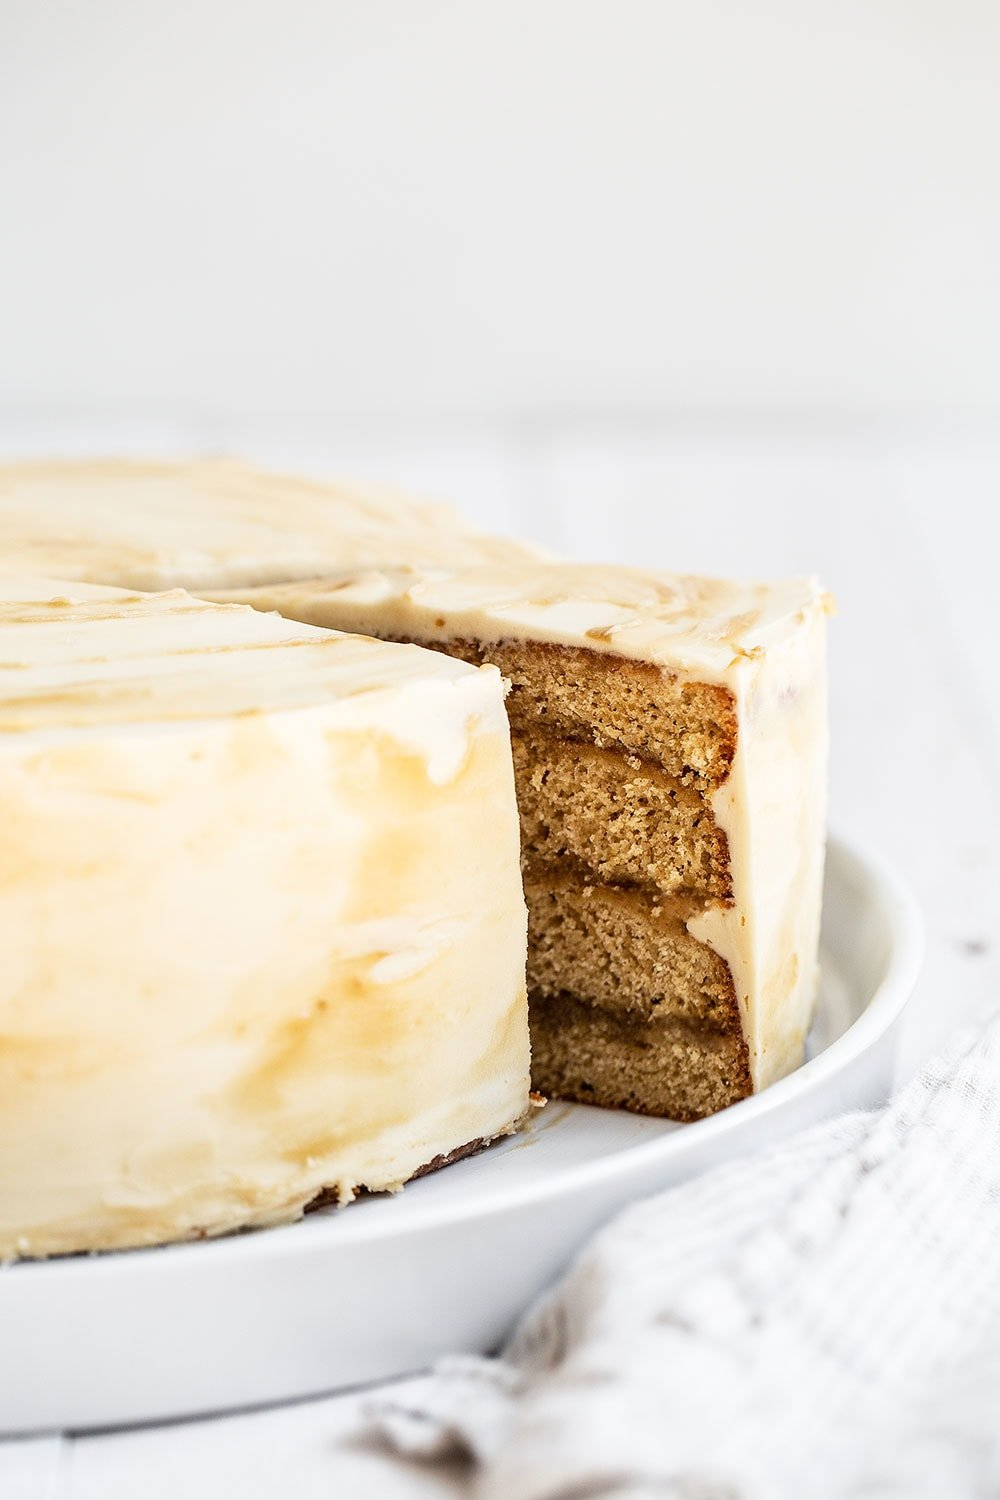 Slice of layer cake being cut out on a platter